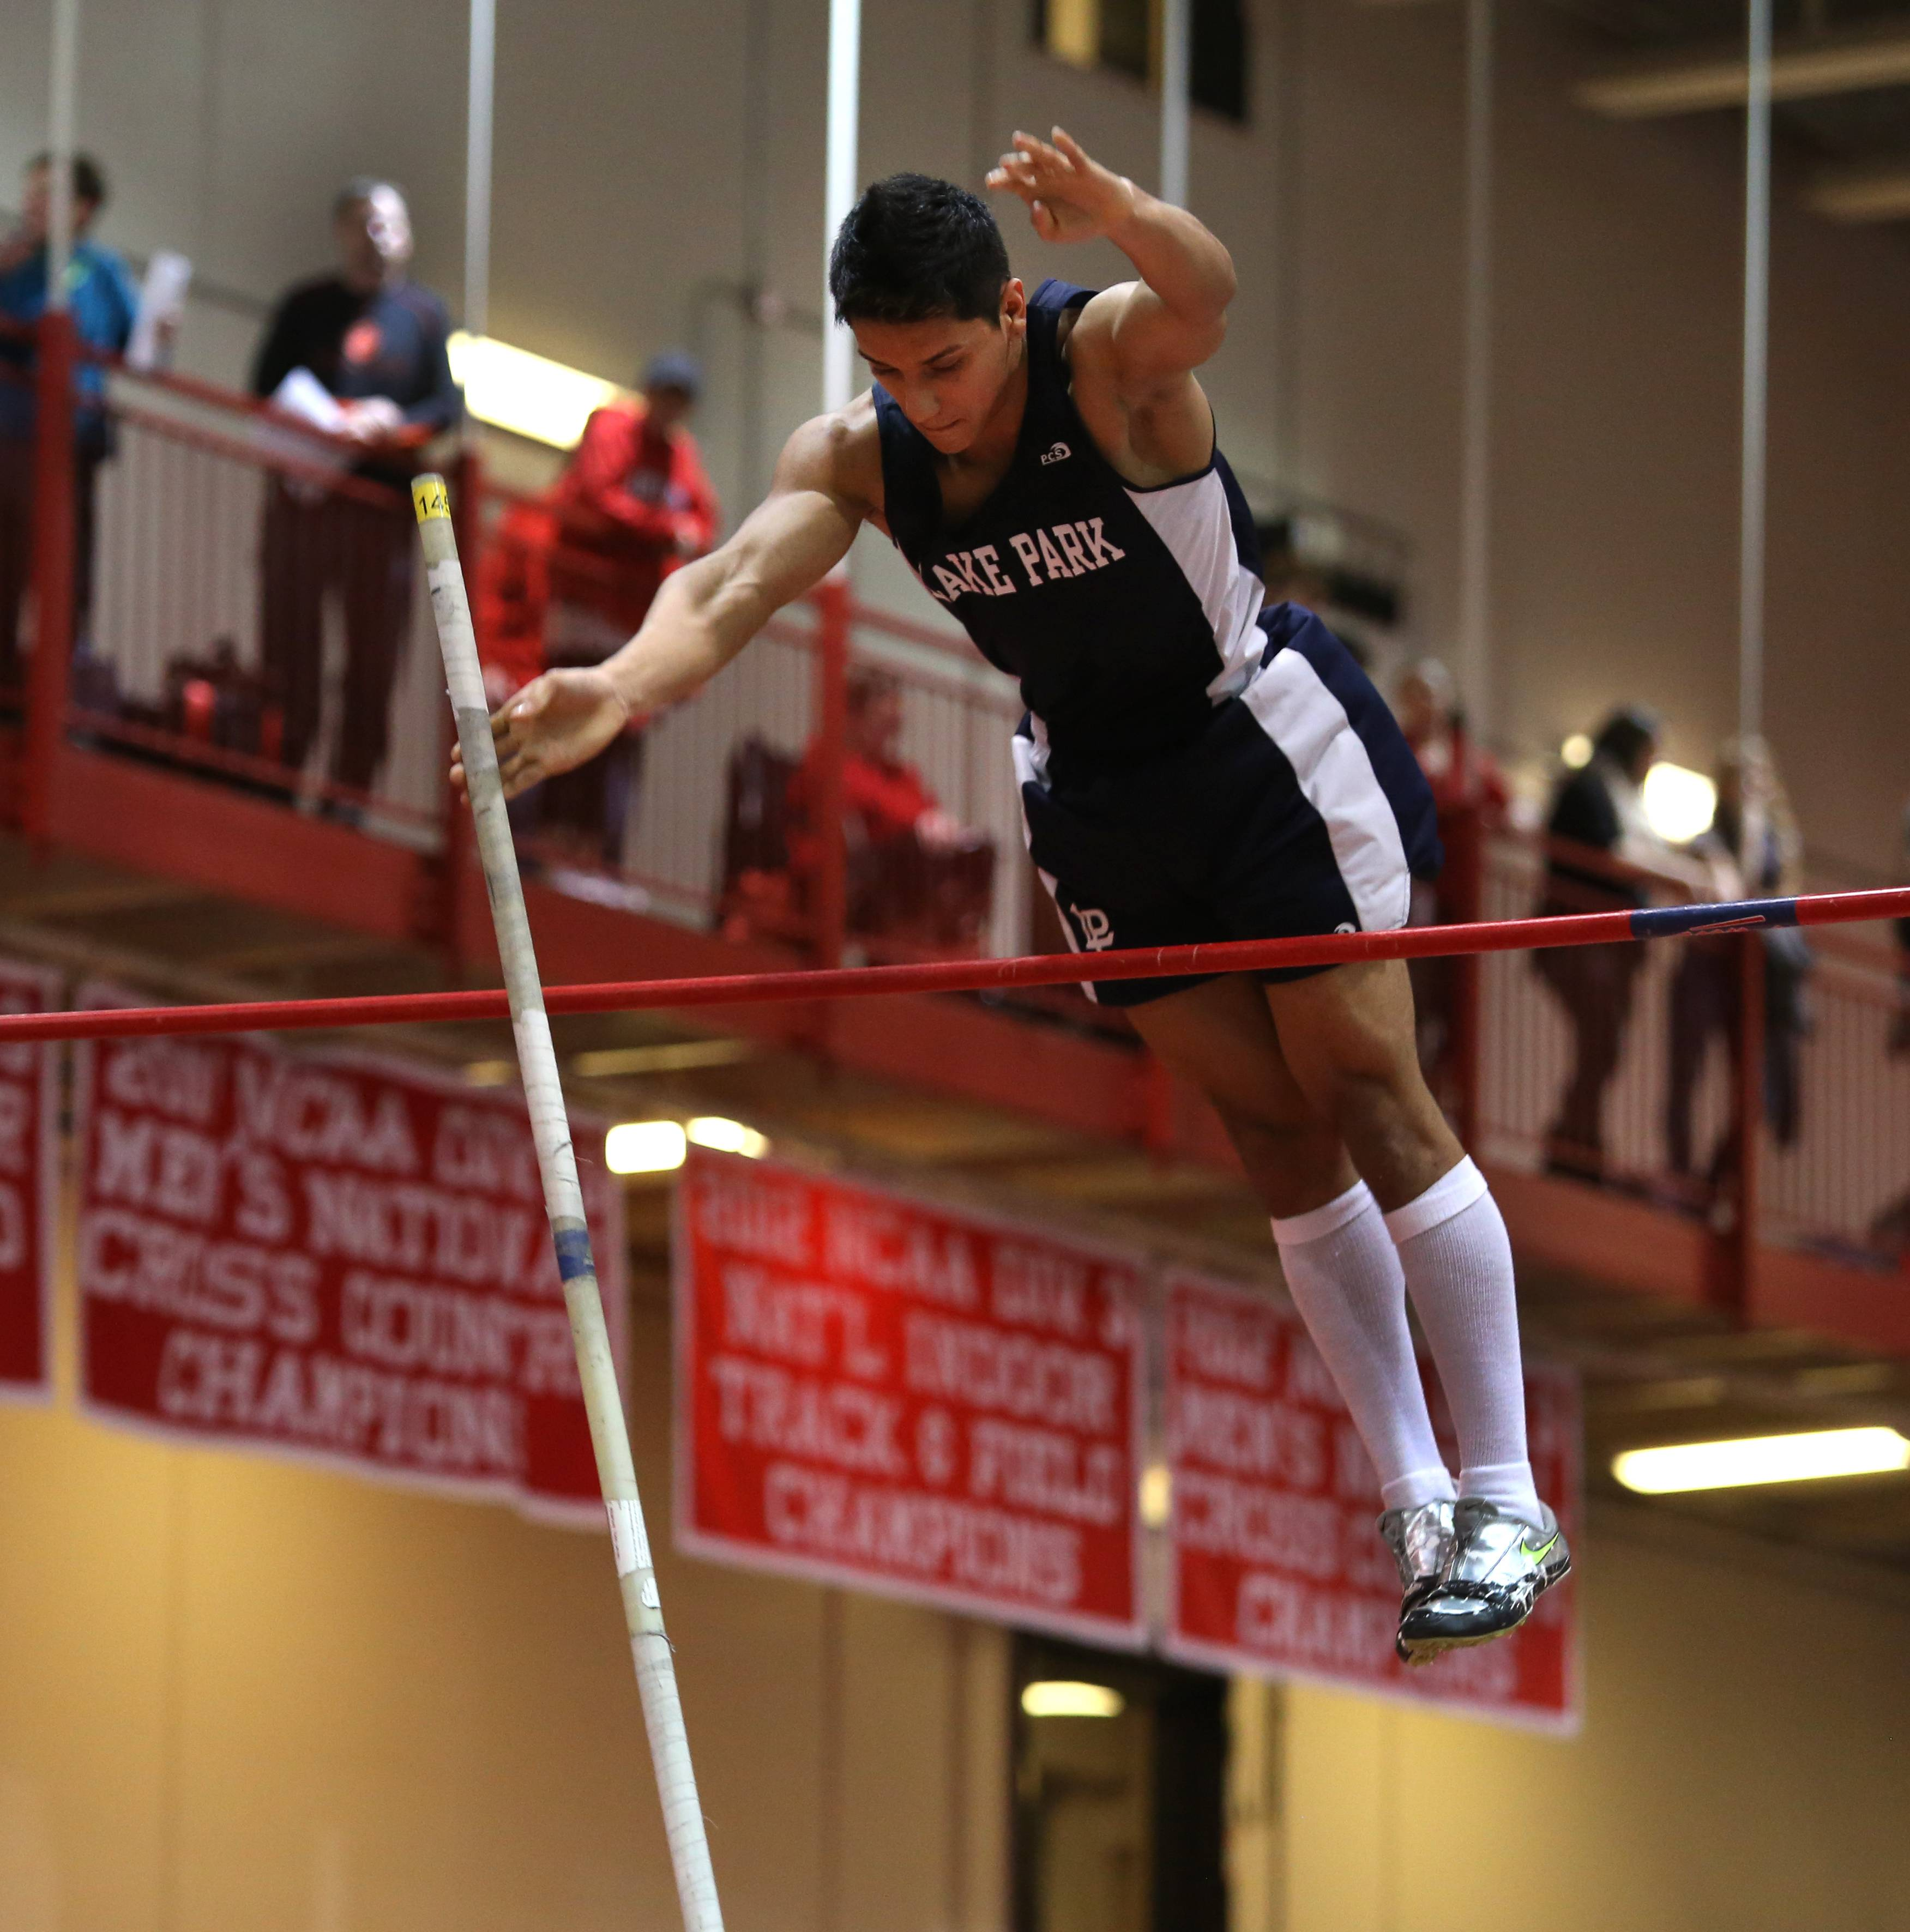 Lake Park's Felix Gates competes in the pole vault during the DuPage Valley Conference Boys' Indoor Track & Field Invitational at North Central College.